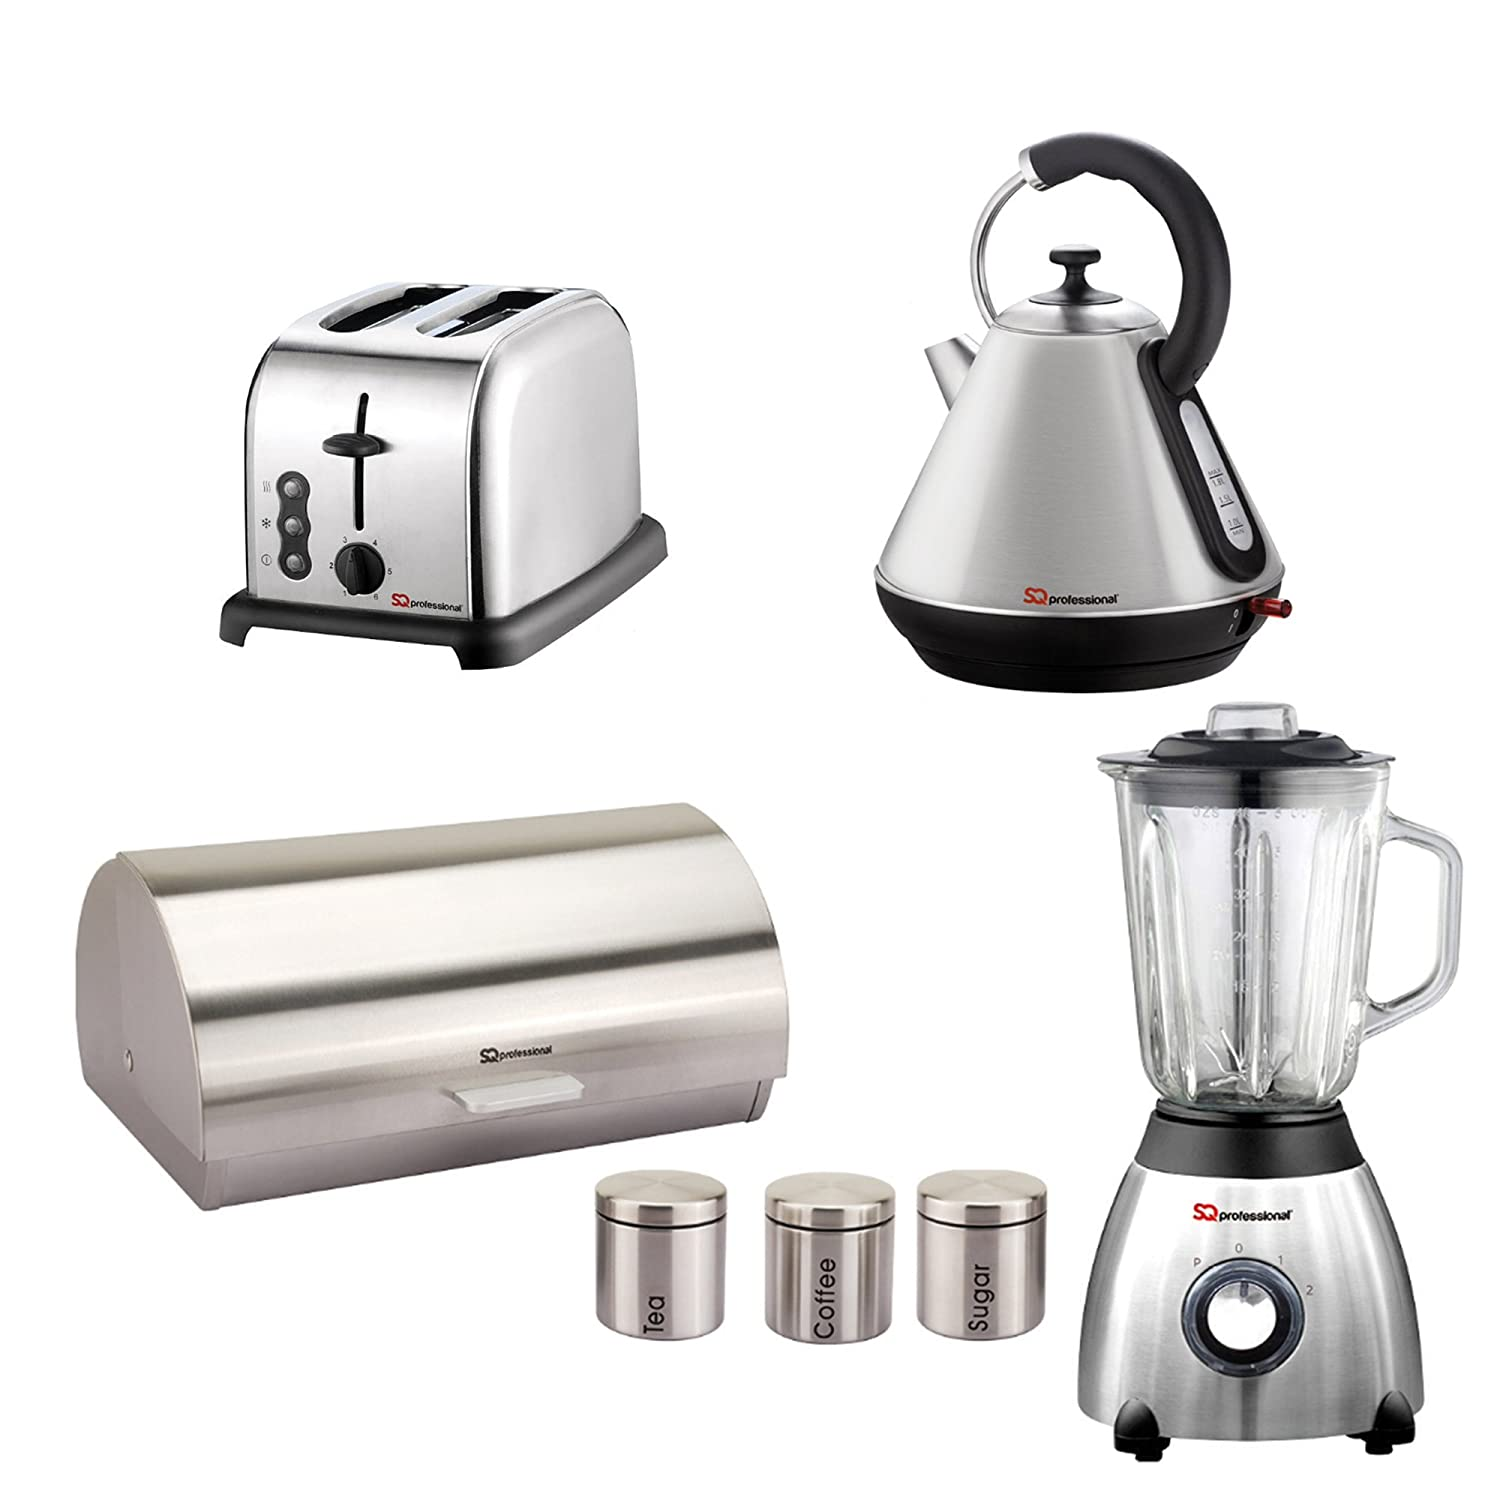 Matching Kitchen Set of Four items: Toaster, Blender, Bread bin and canisters and Kettle in Purple, Black, Red or Silver (Black) SQ Professional